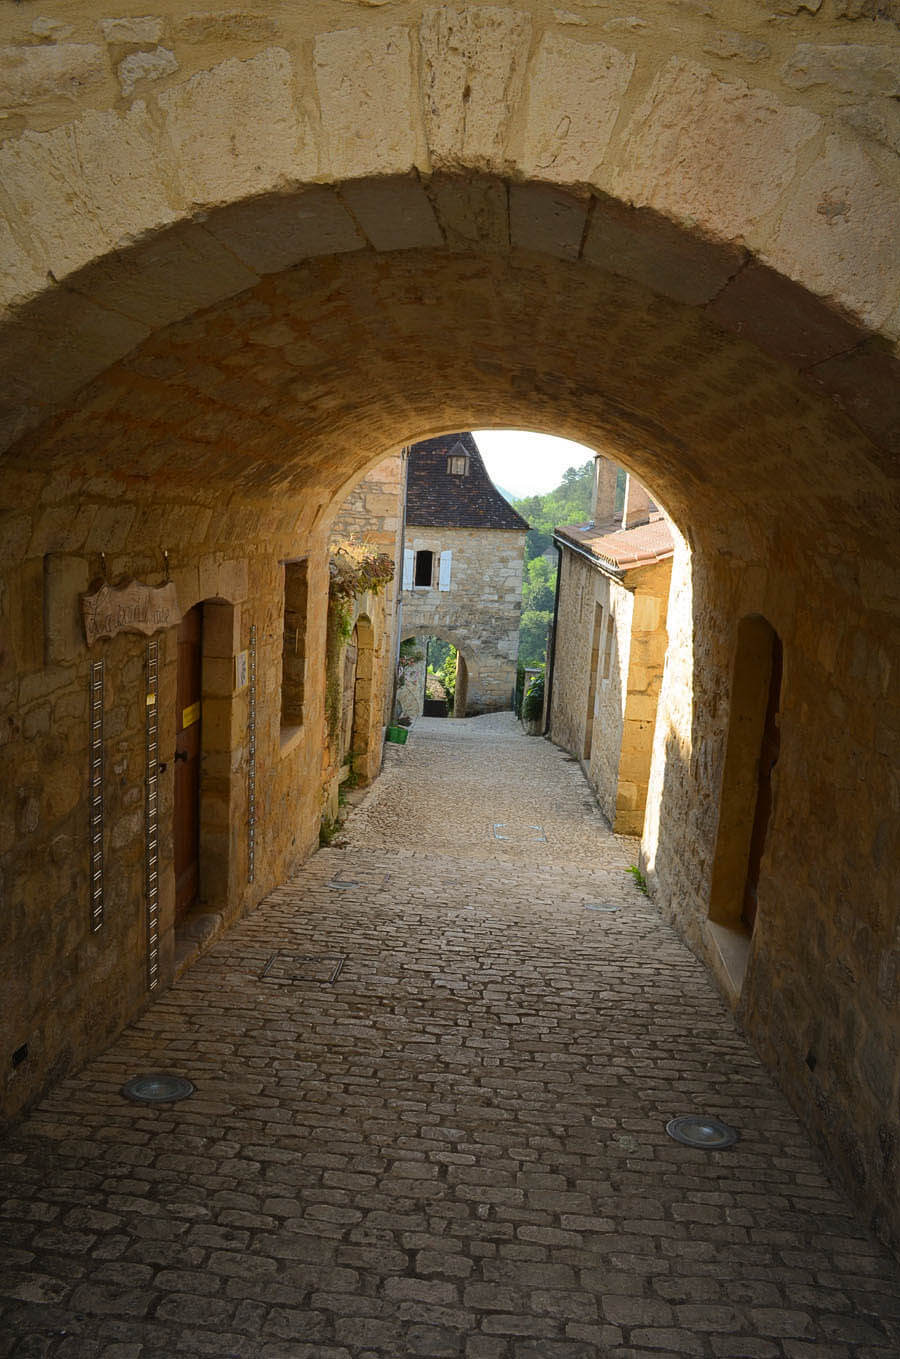 Streets in Castelnaud ner Castel-Bike